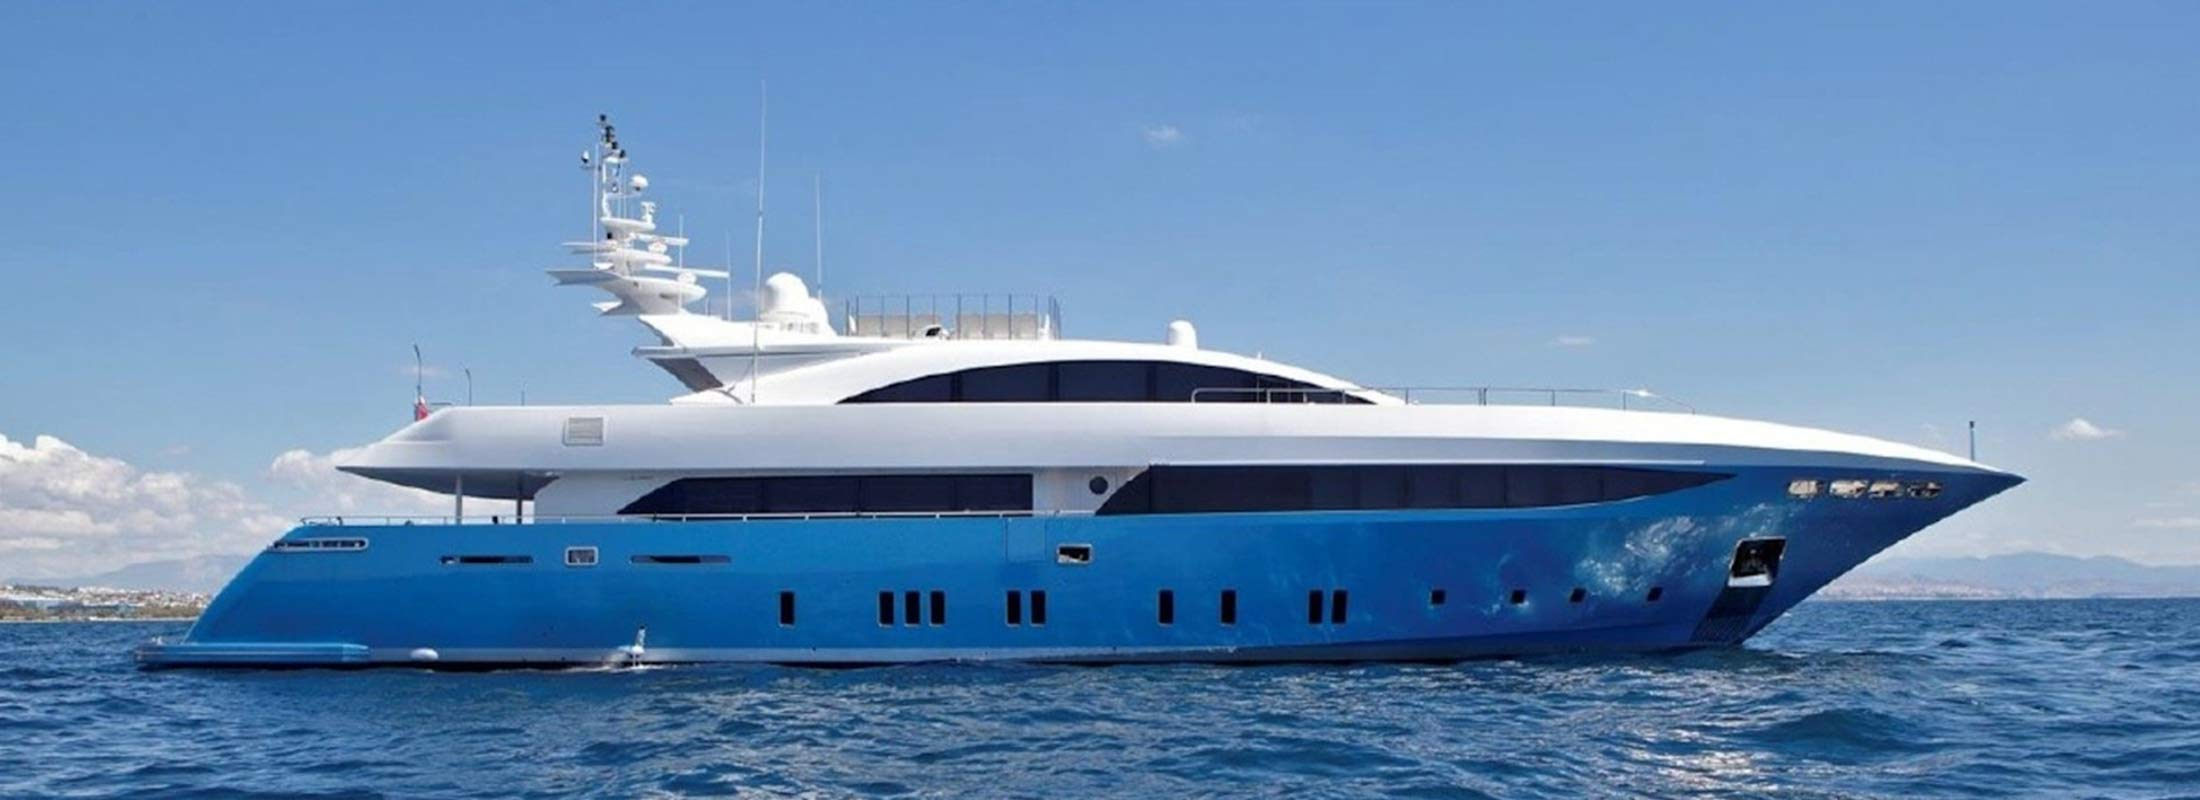 Barents Sea Motor Yacht for Charter Mediterranean slider 1